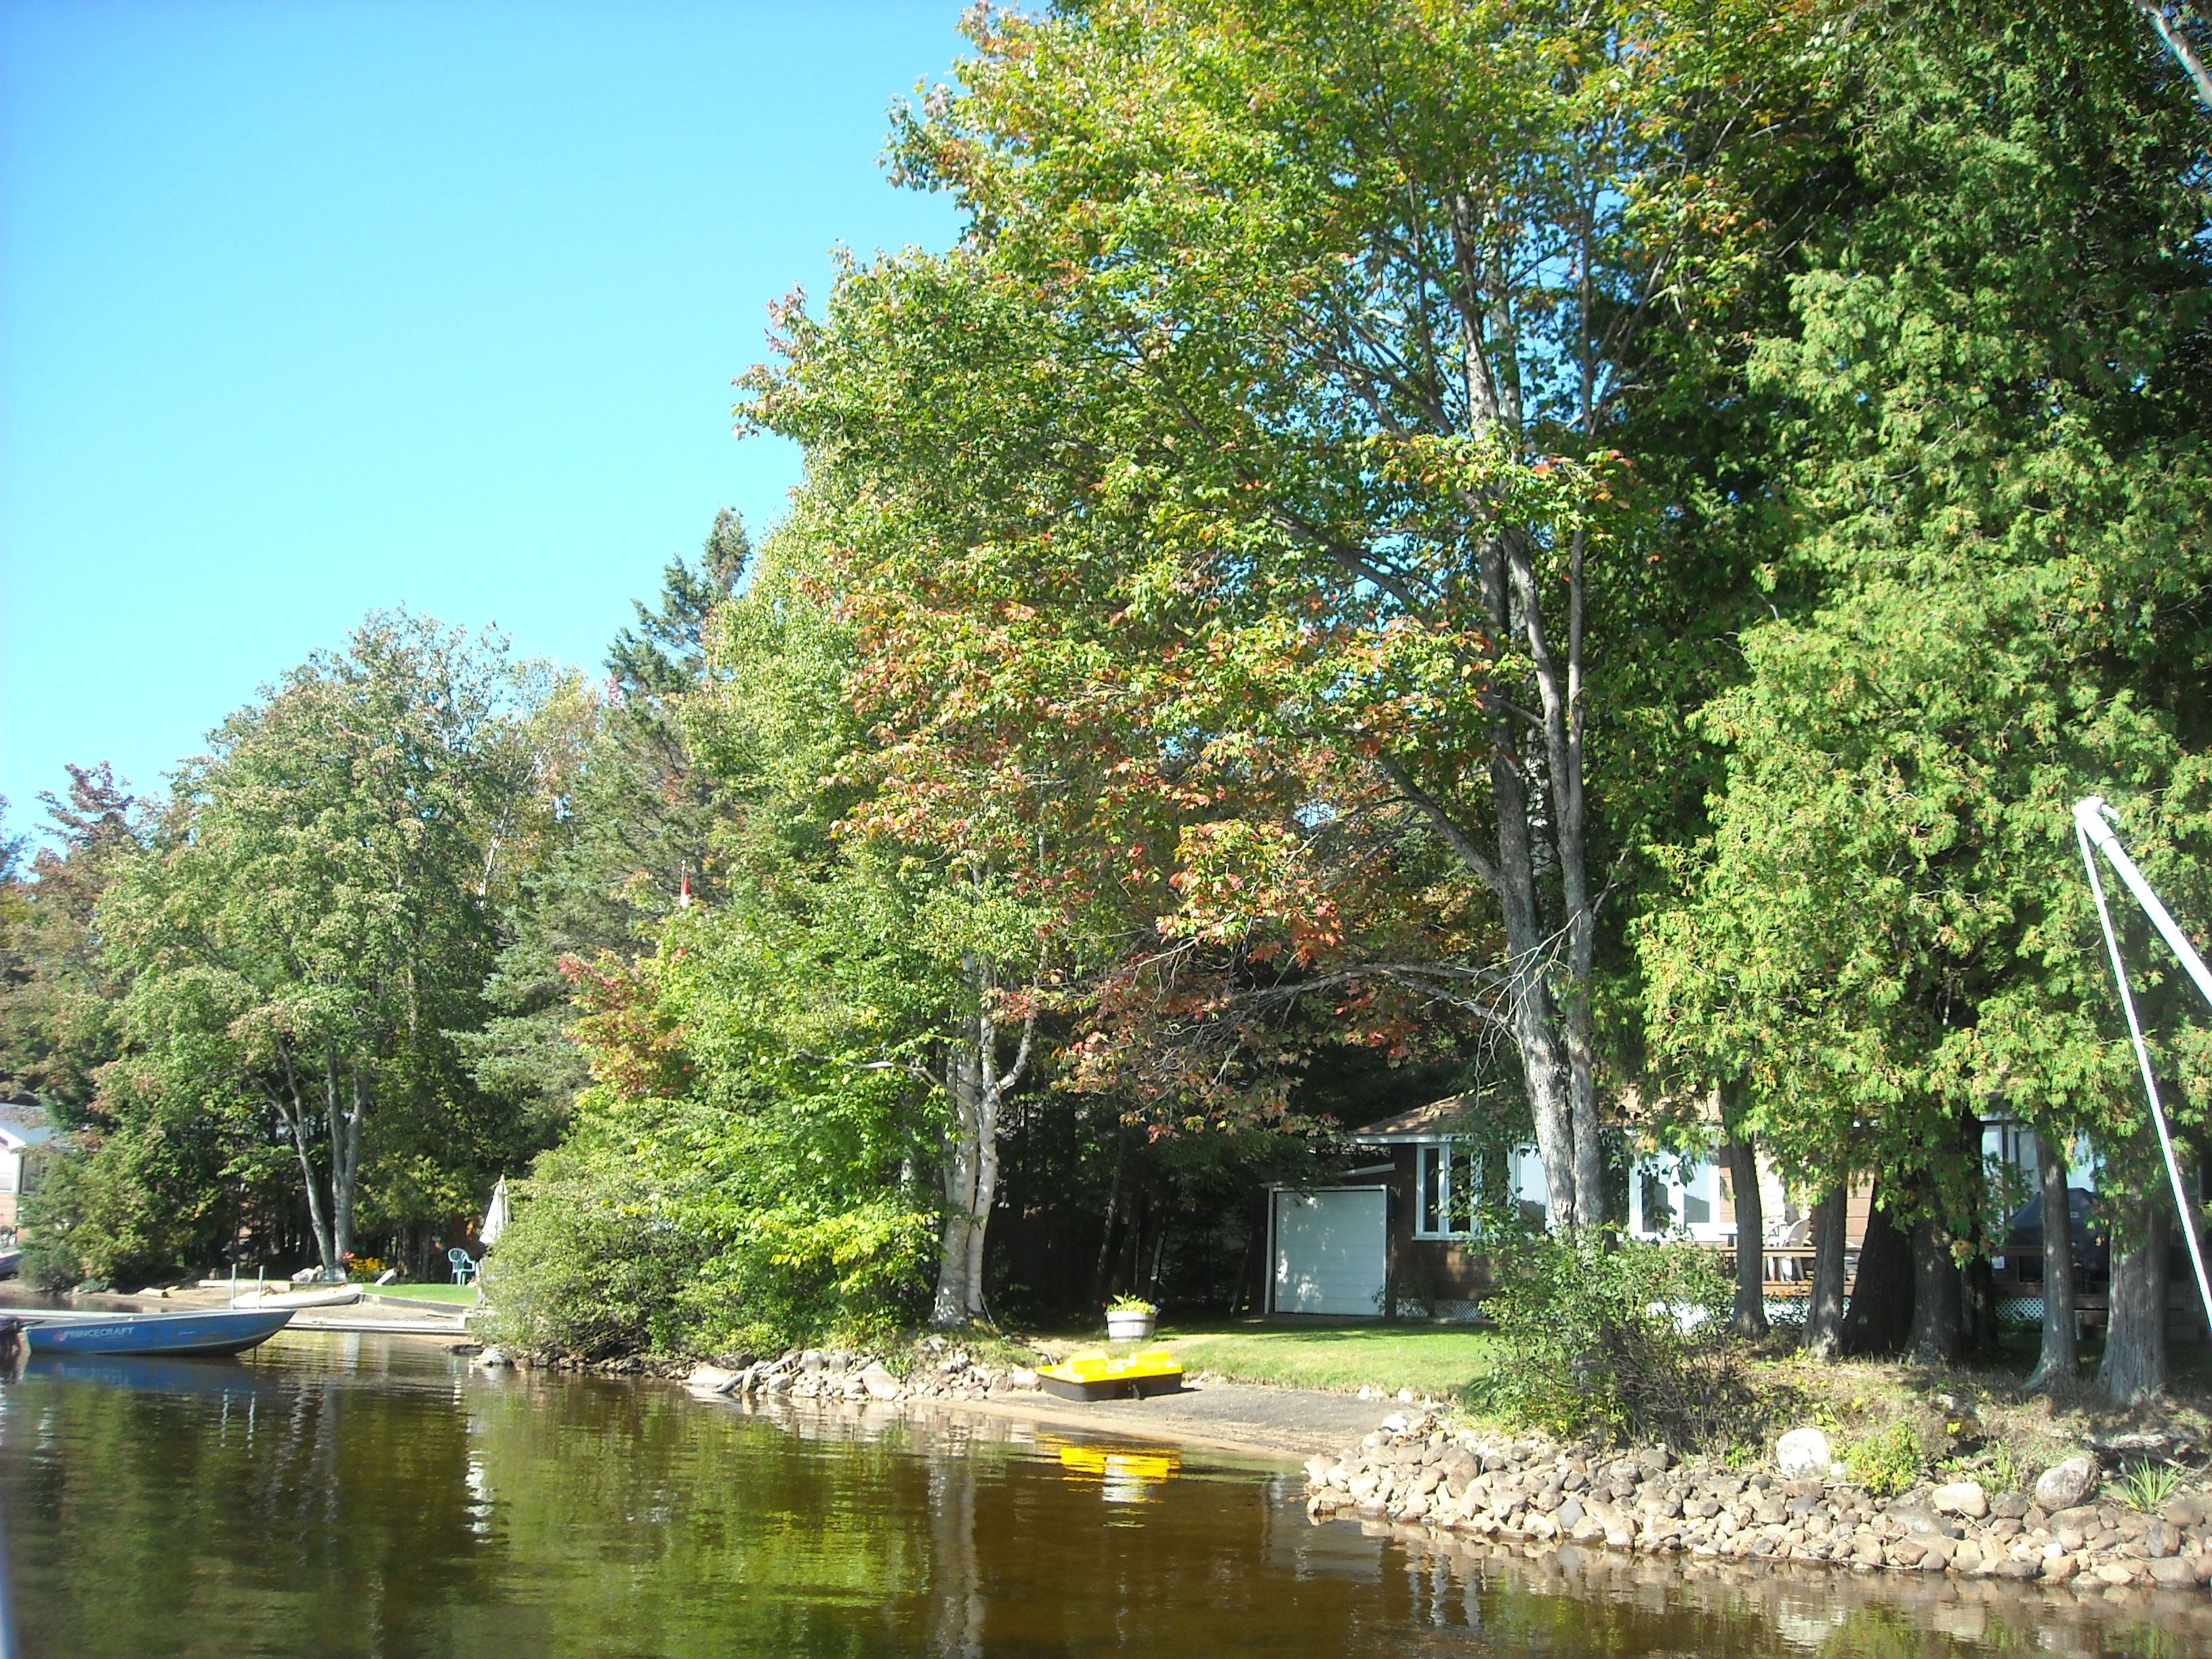 cottage roofedaccommodation rusticcabins bonnechere at accommodation rentals riverwatch cabin ontario cottages parks exterior wasaga cabins rustic beach roofed